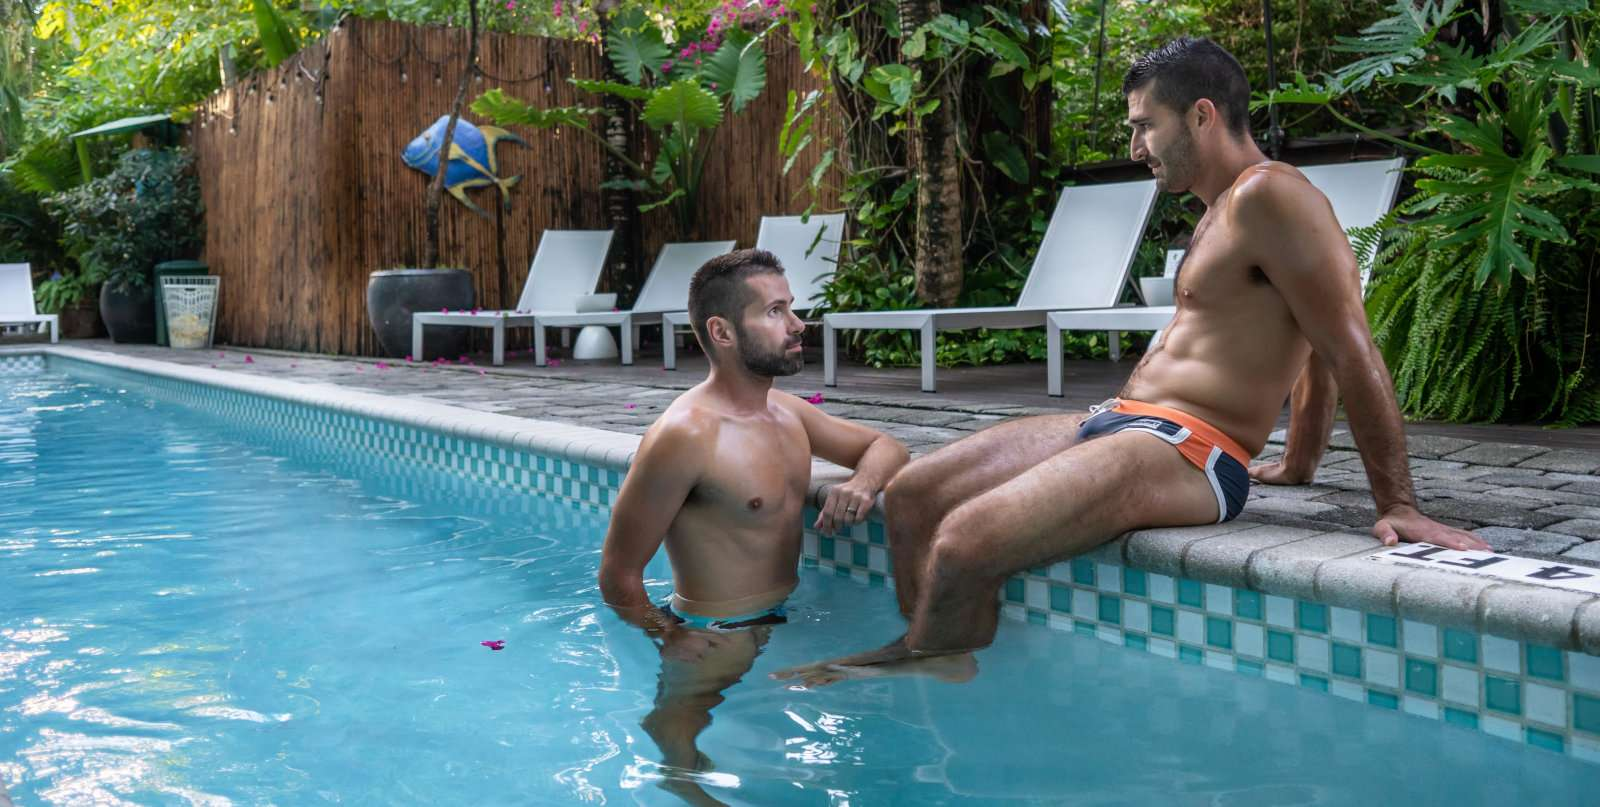 The beautiful gardens and pools at Cabanas, a great gay accomodation in Fort Lauderdale, Florida.